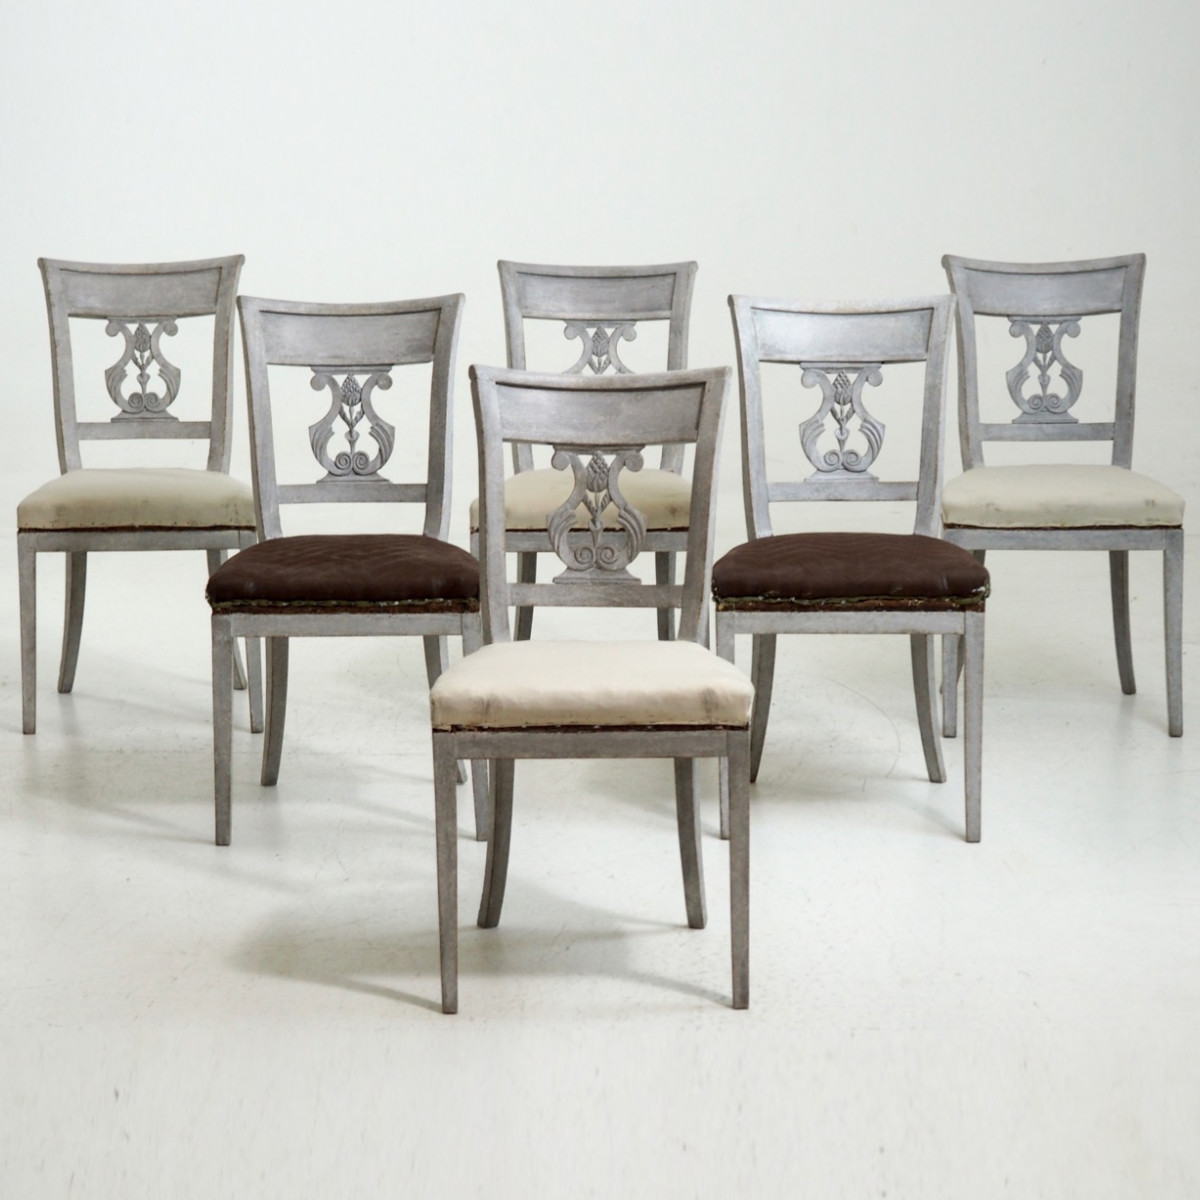 Rare dinning room chairs, circa 1820. - € 2.200